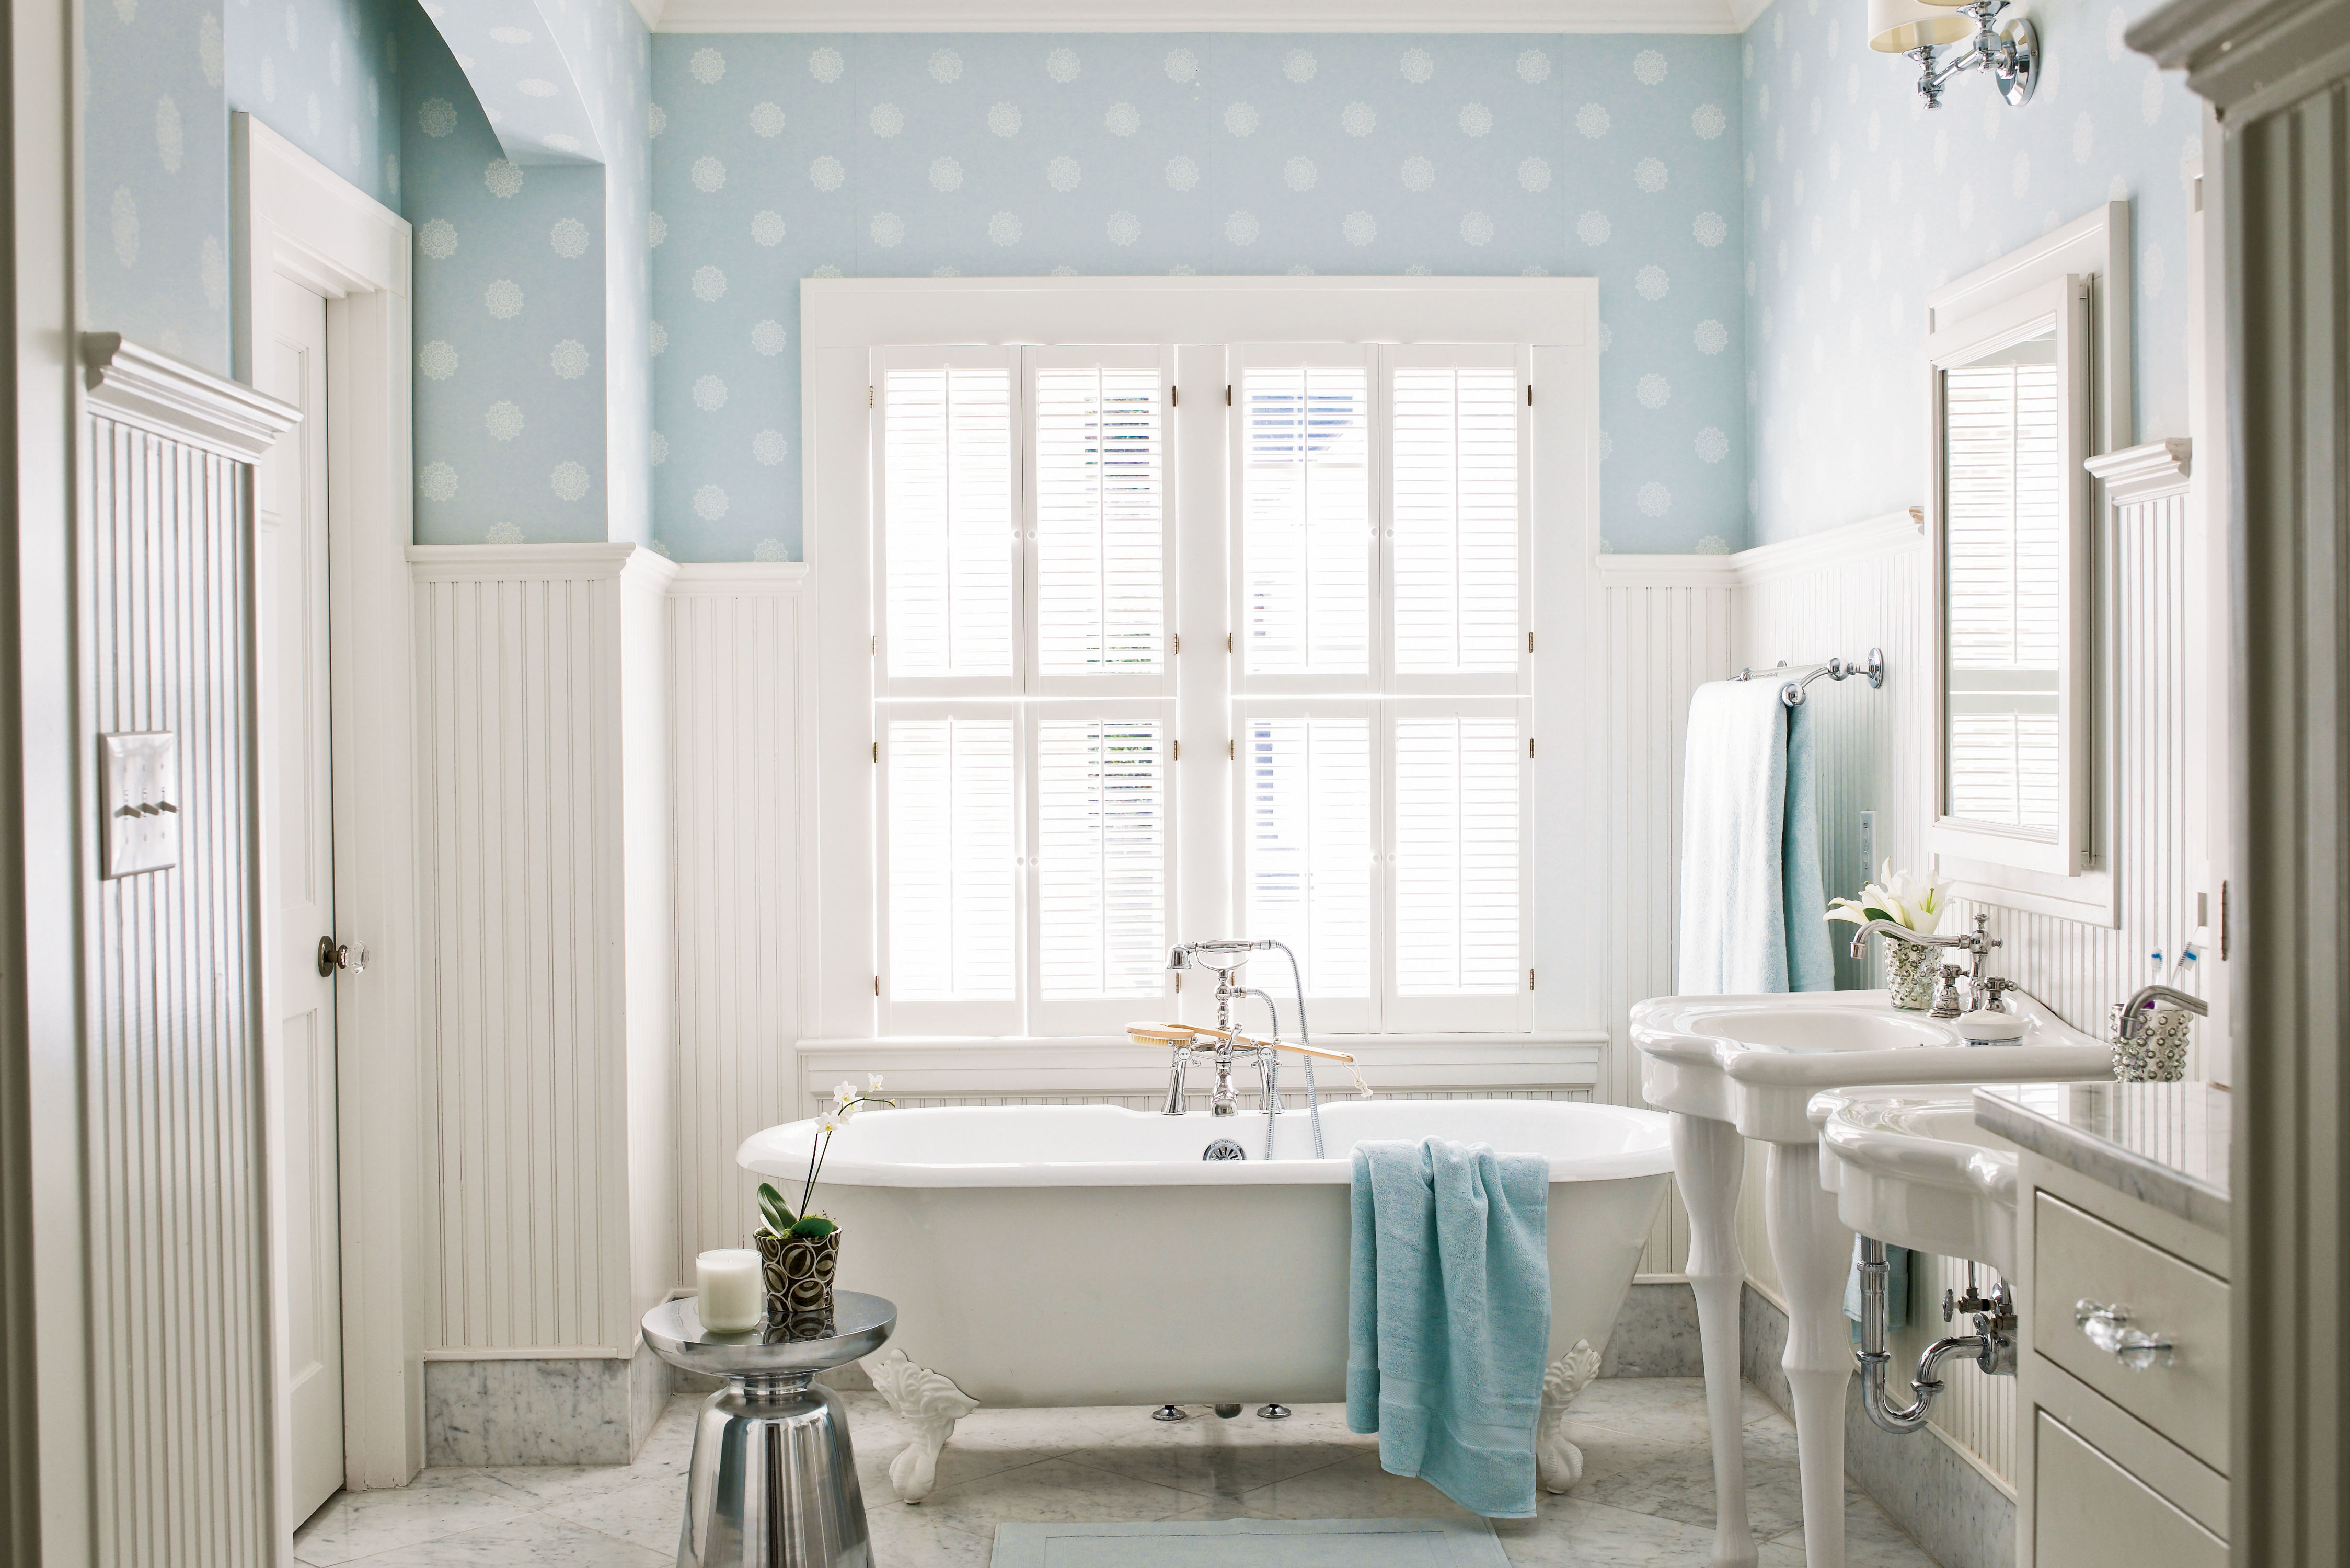 A Bathroom in Our Favorite Shade is the Key to Selling Your Home for Top Dollar